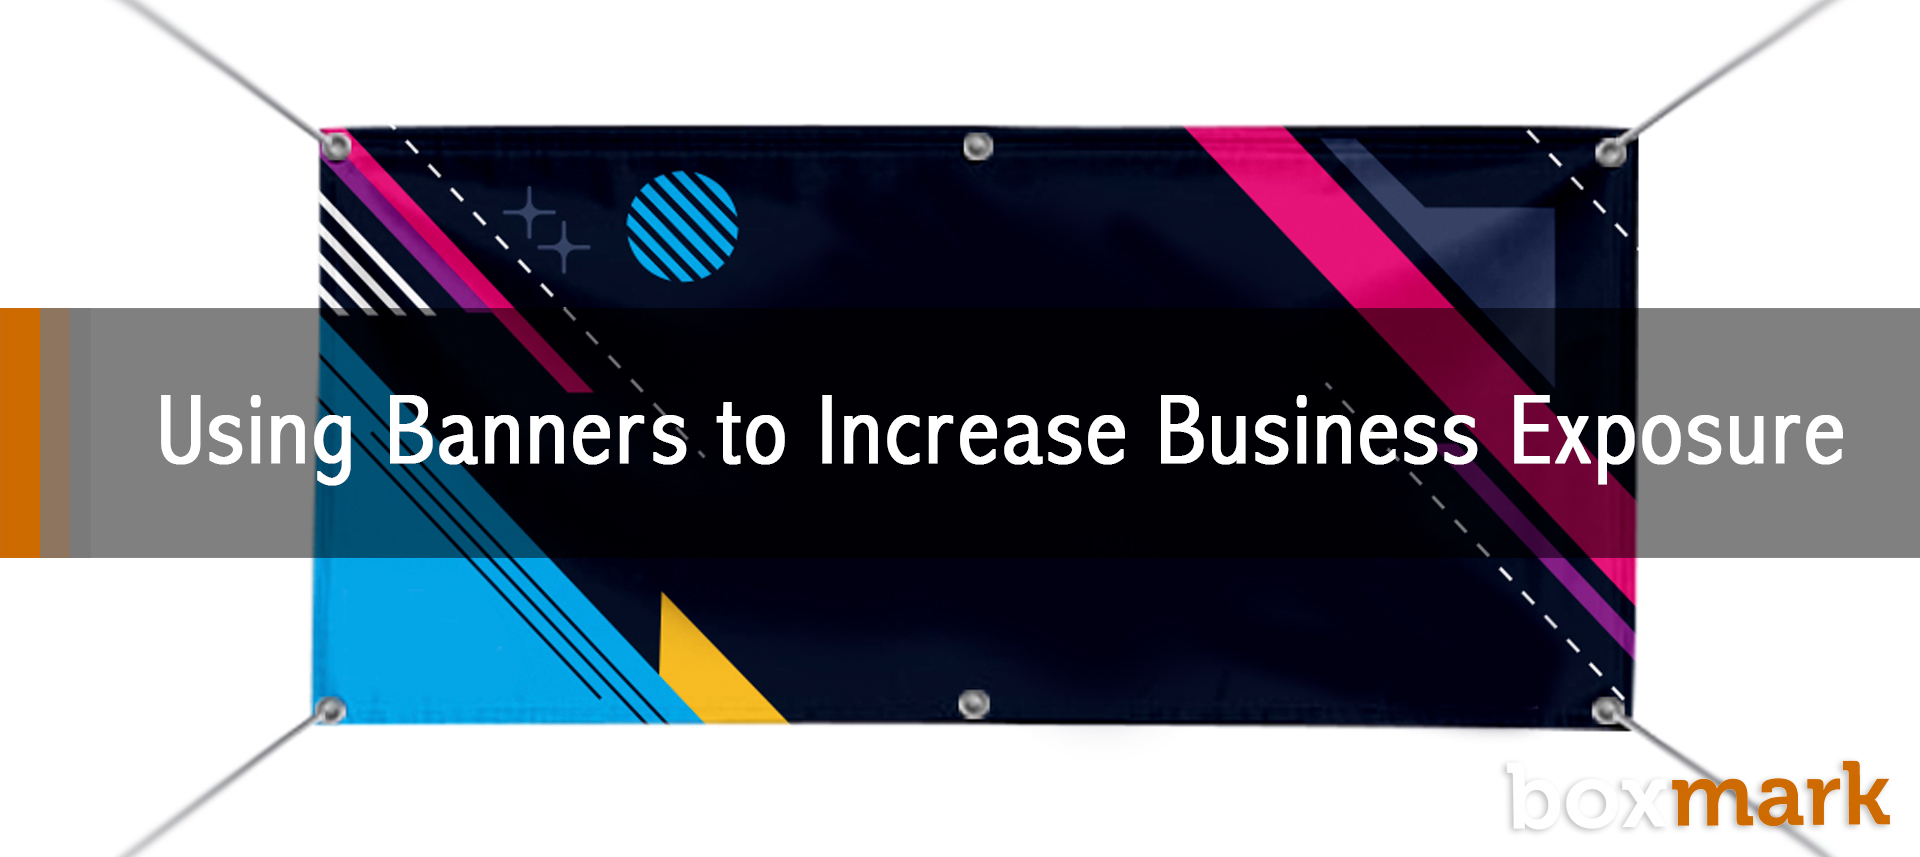 Using Banners to Increase Business Exposure